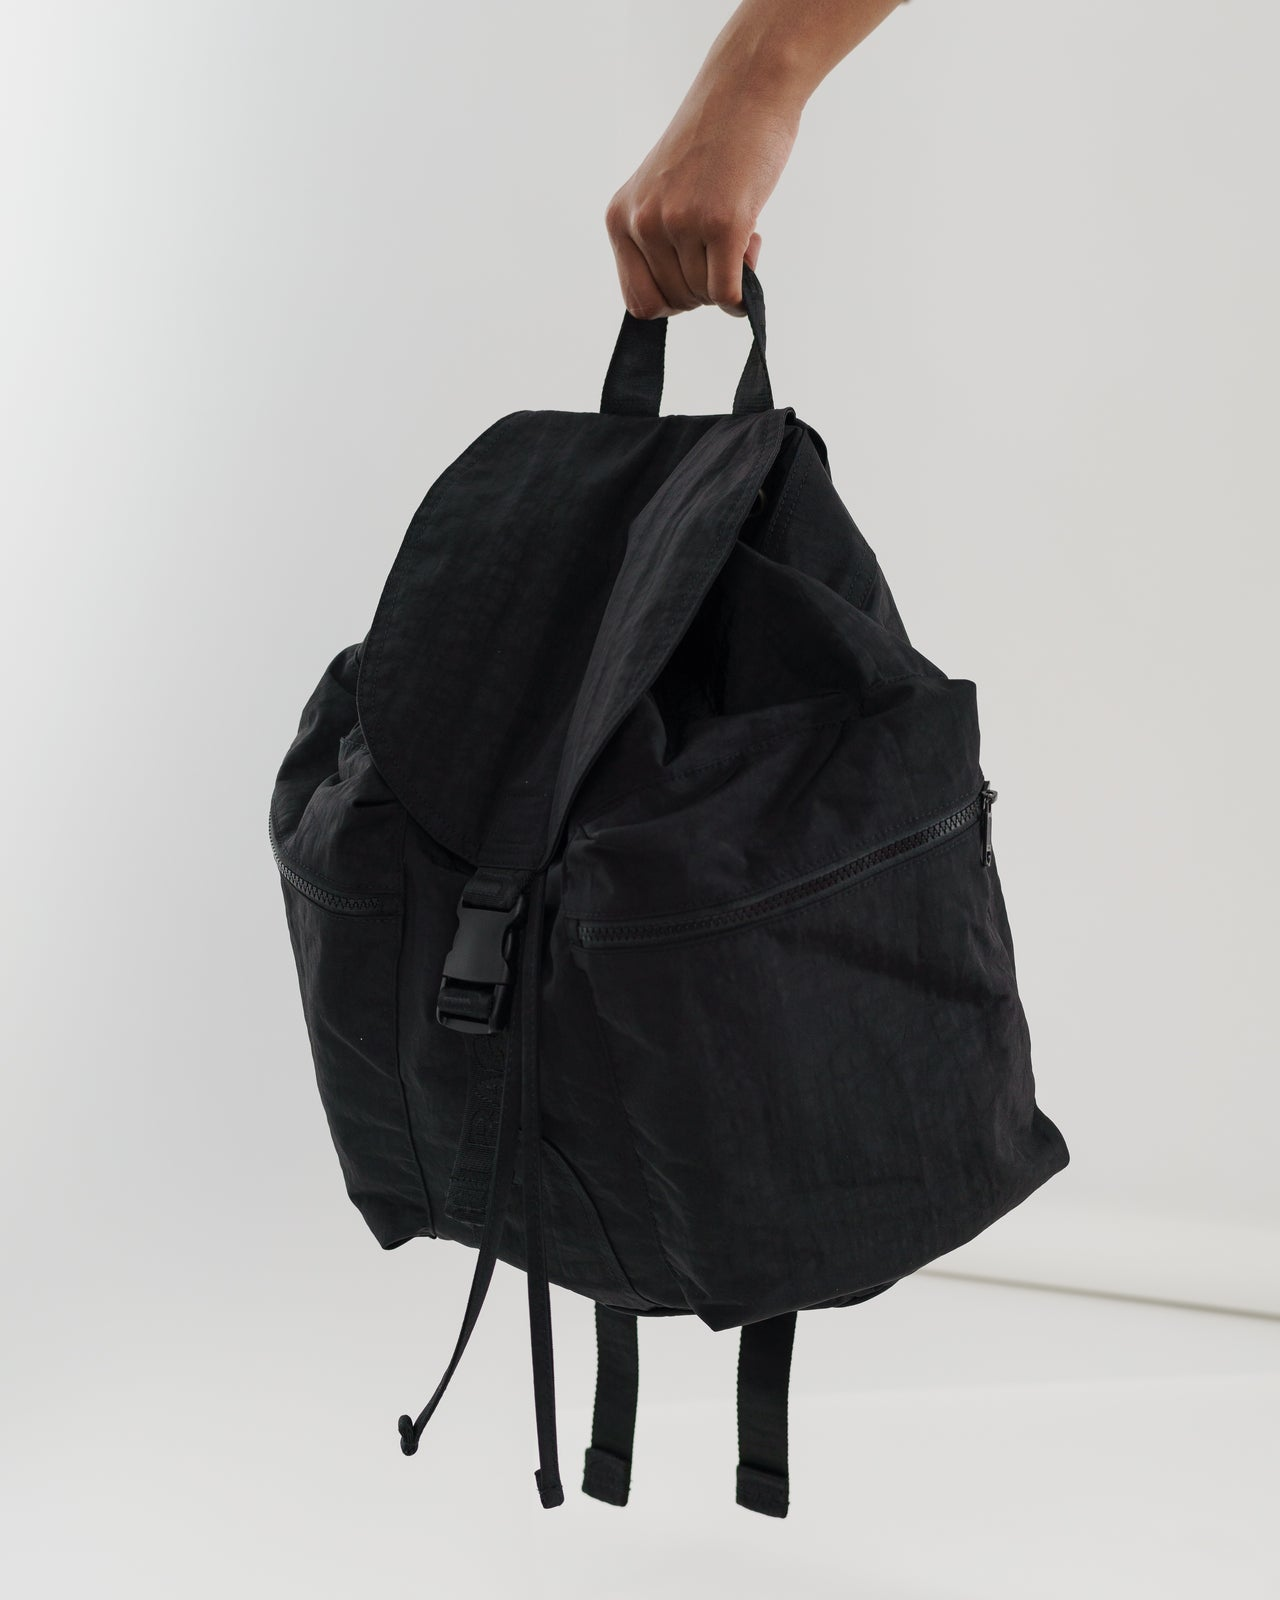 Large Sport Backpack - Black